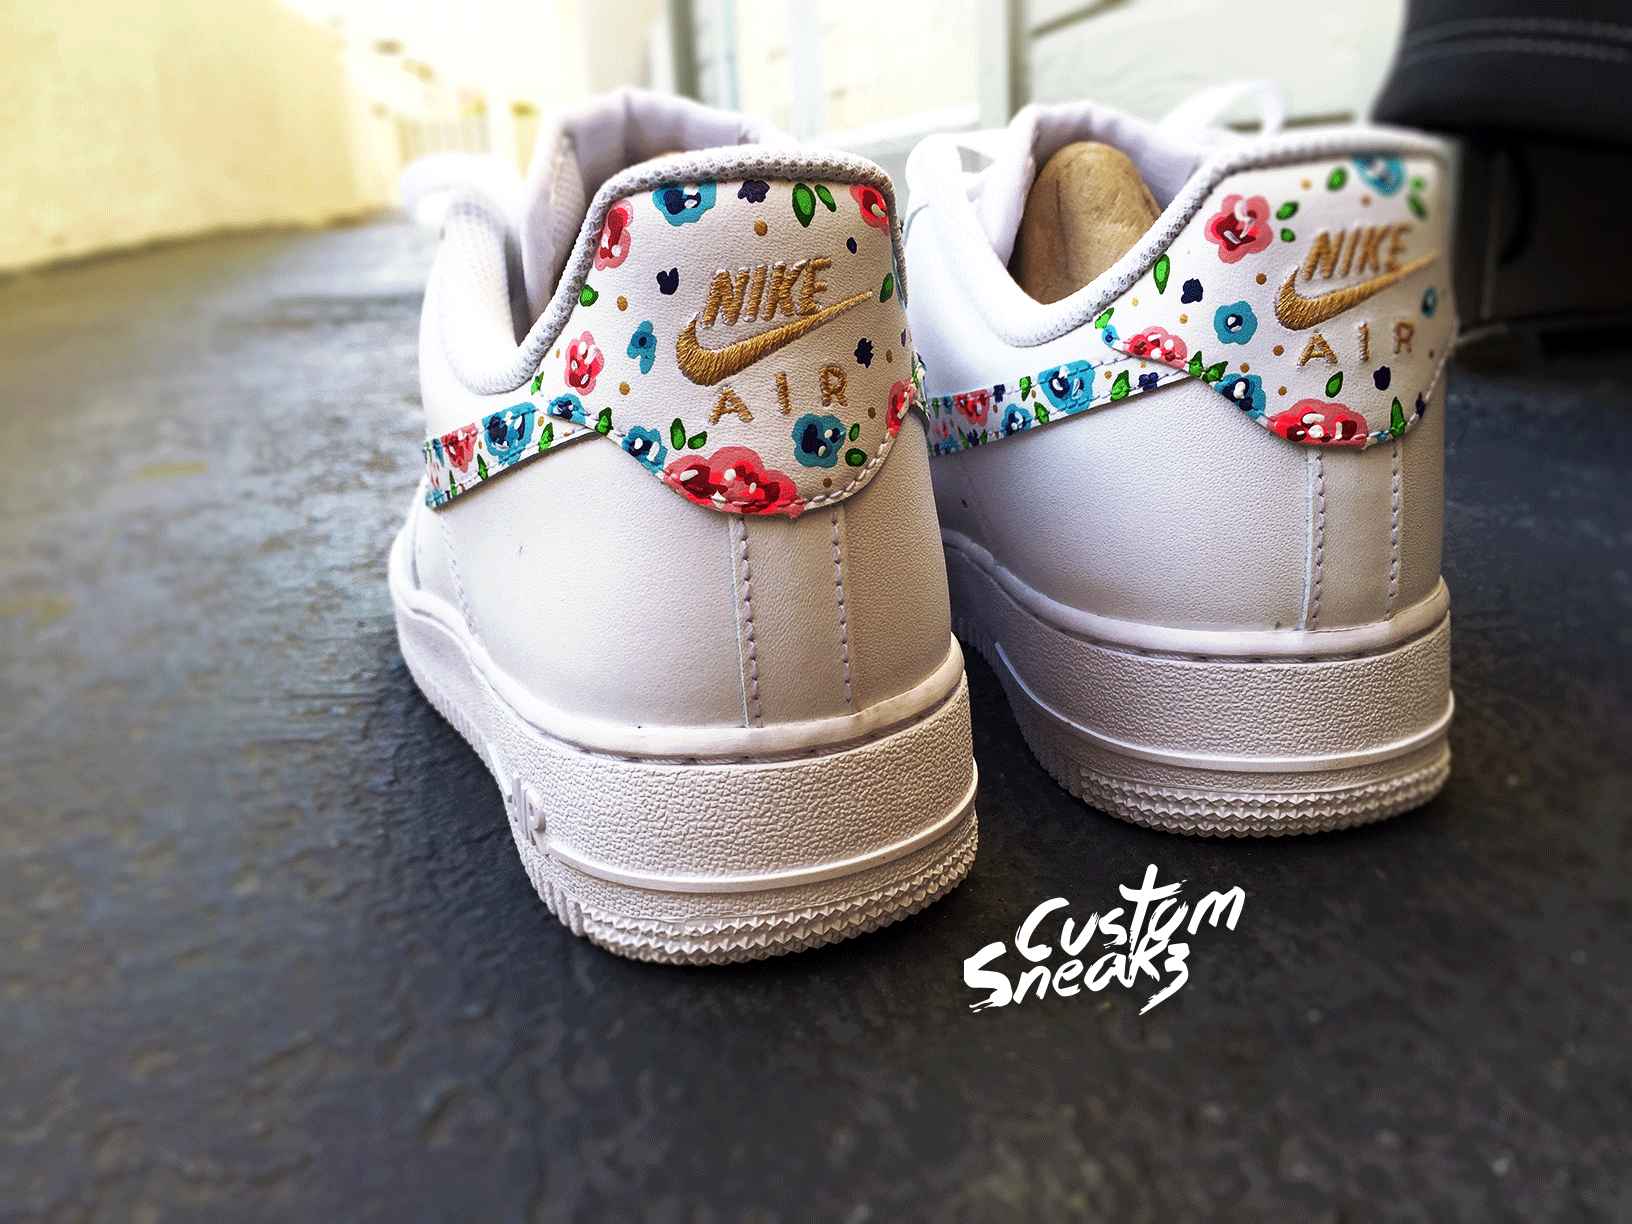 Copy of Nike Air Force 1 customs, AF1 custom, Air force Ones